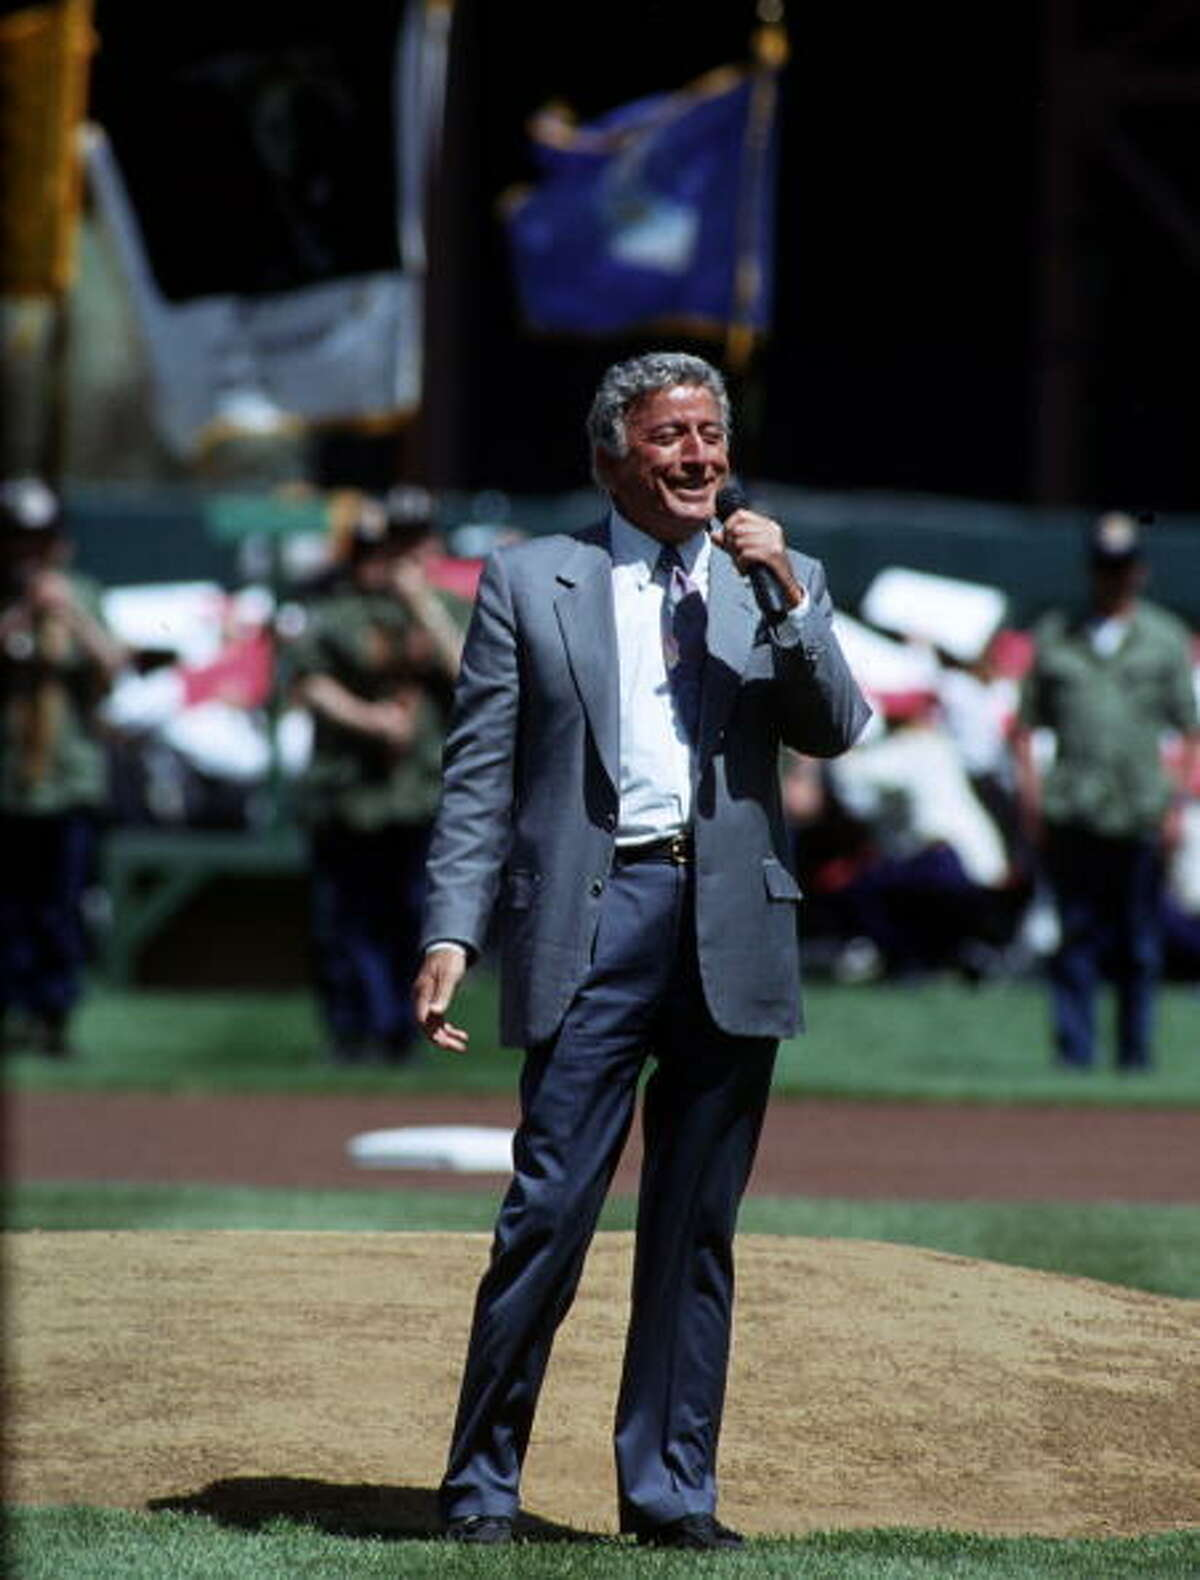 1993: Singer Tony Bennett sings the National Anthem prior to a Giants game in April 1993.